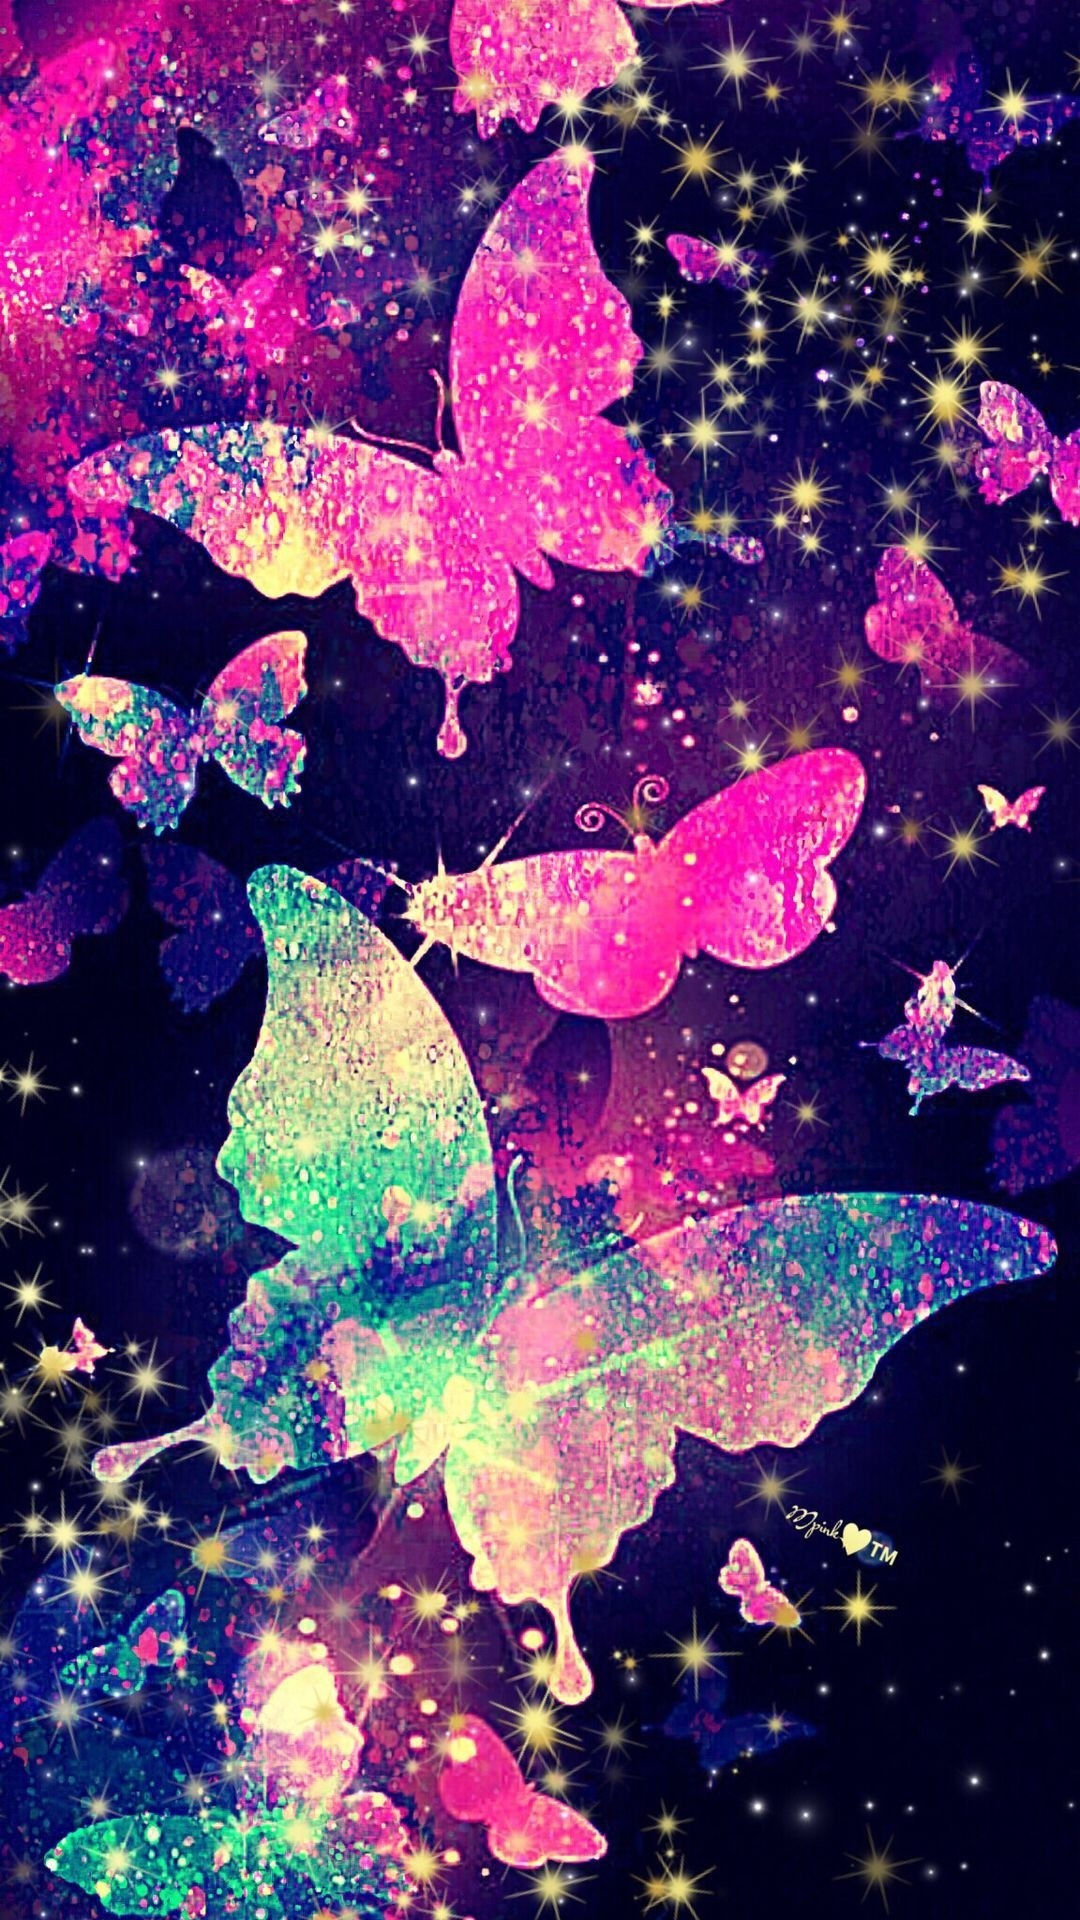 Aesthetic Butterfly iphone wallpaper high quality